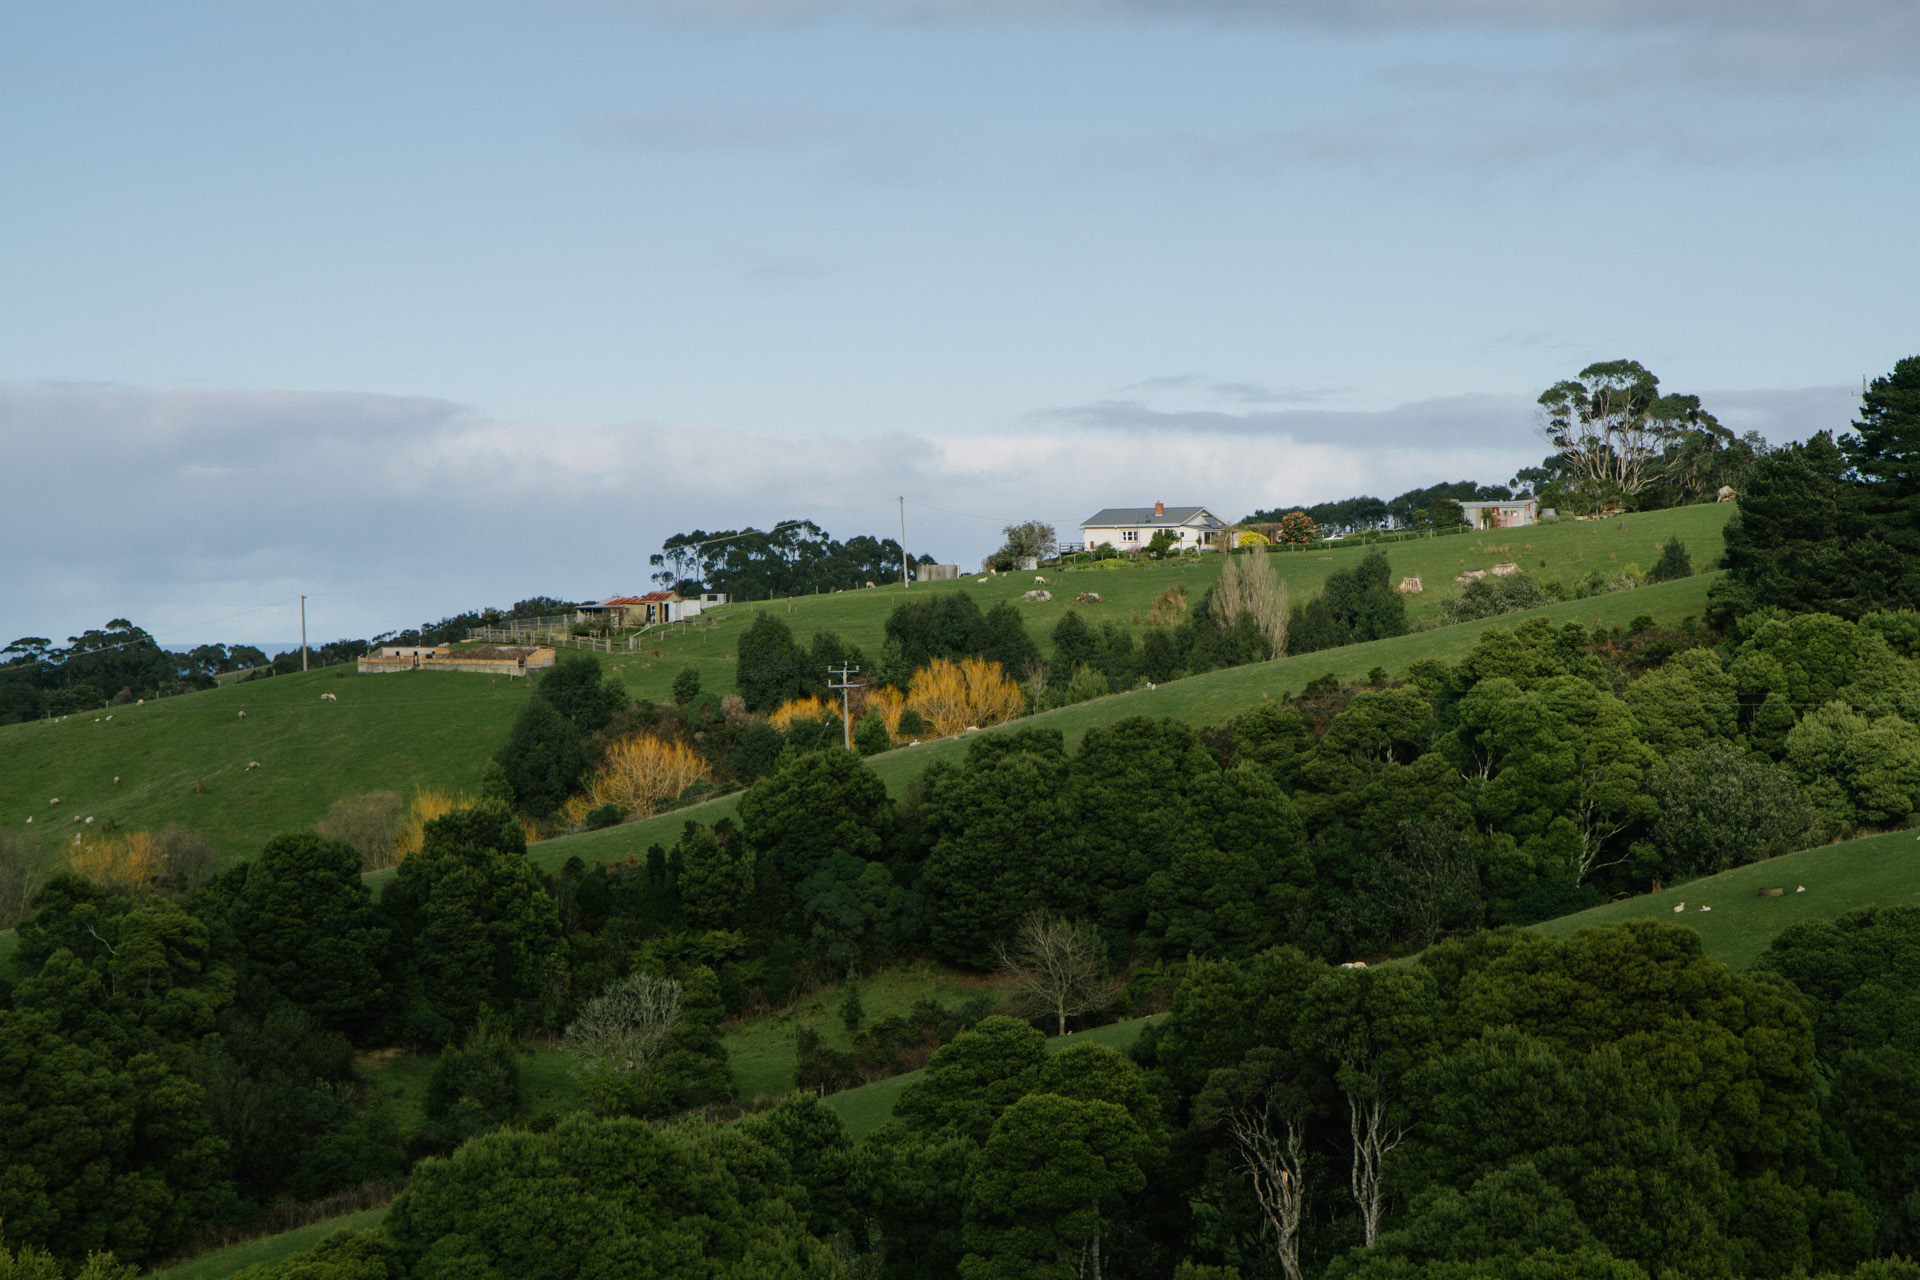 Yuulong Australia  city pictures gallery : View of rolling hills in Yuulong Victoria Australia